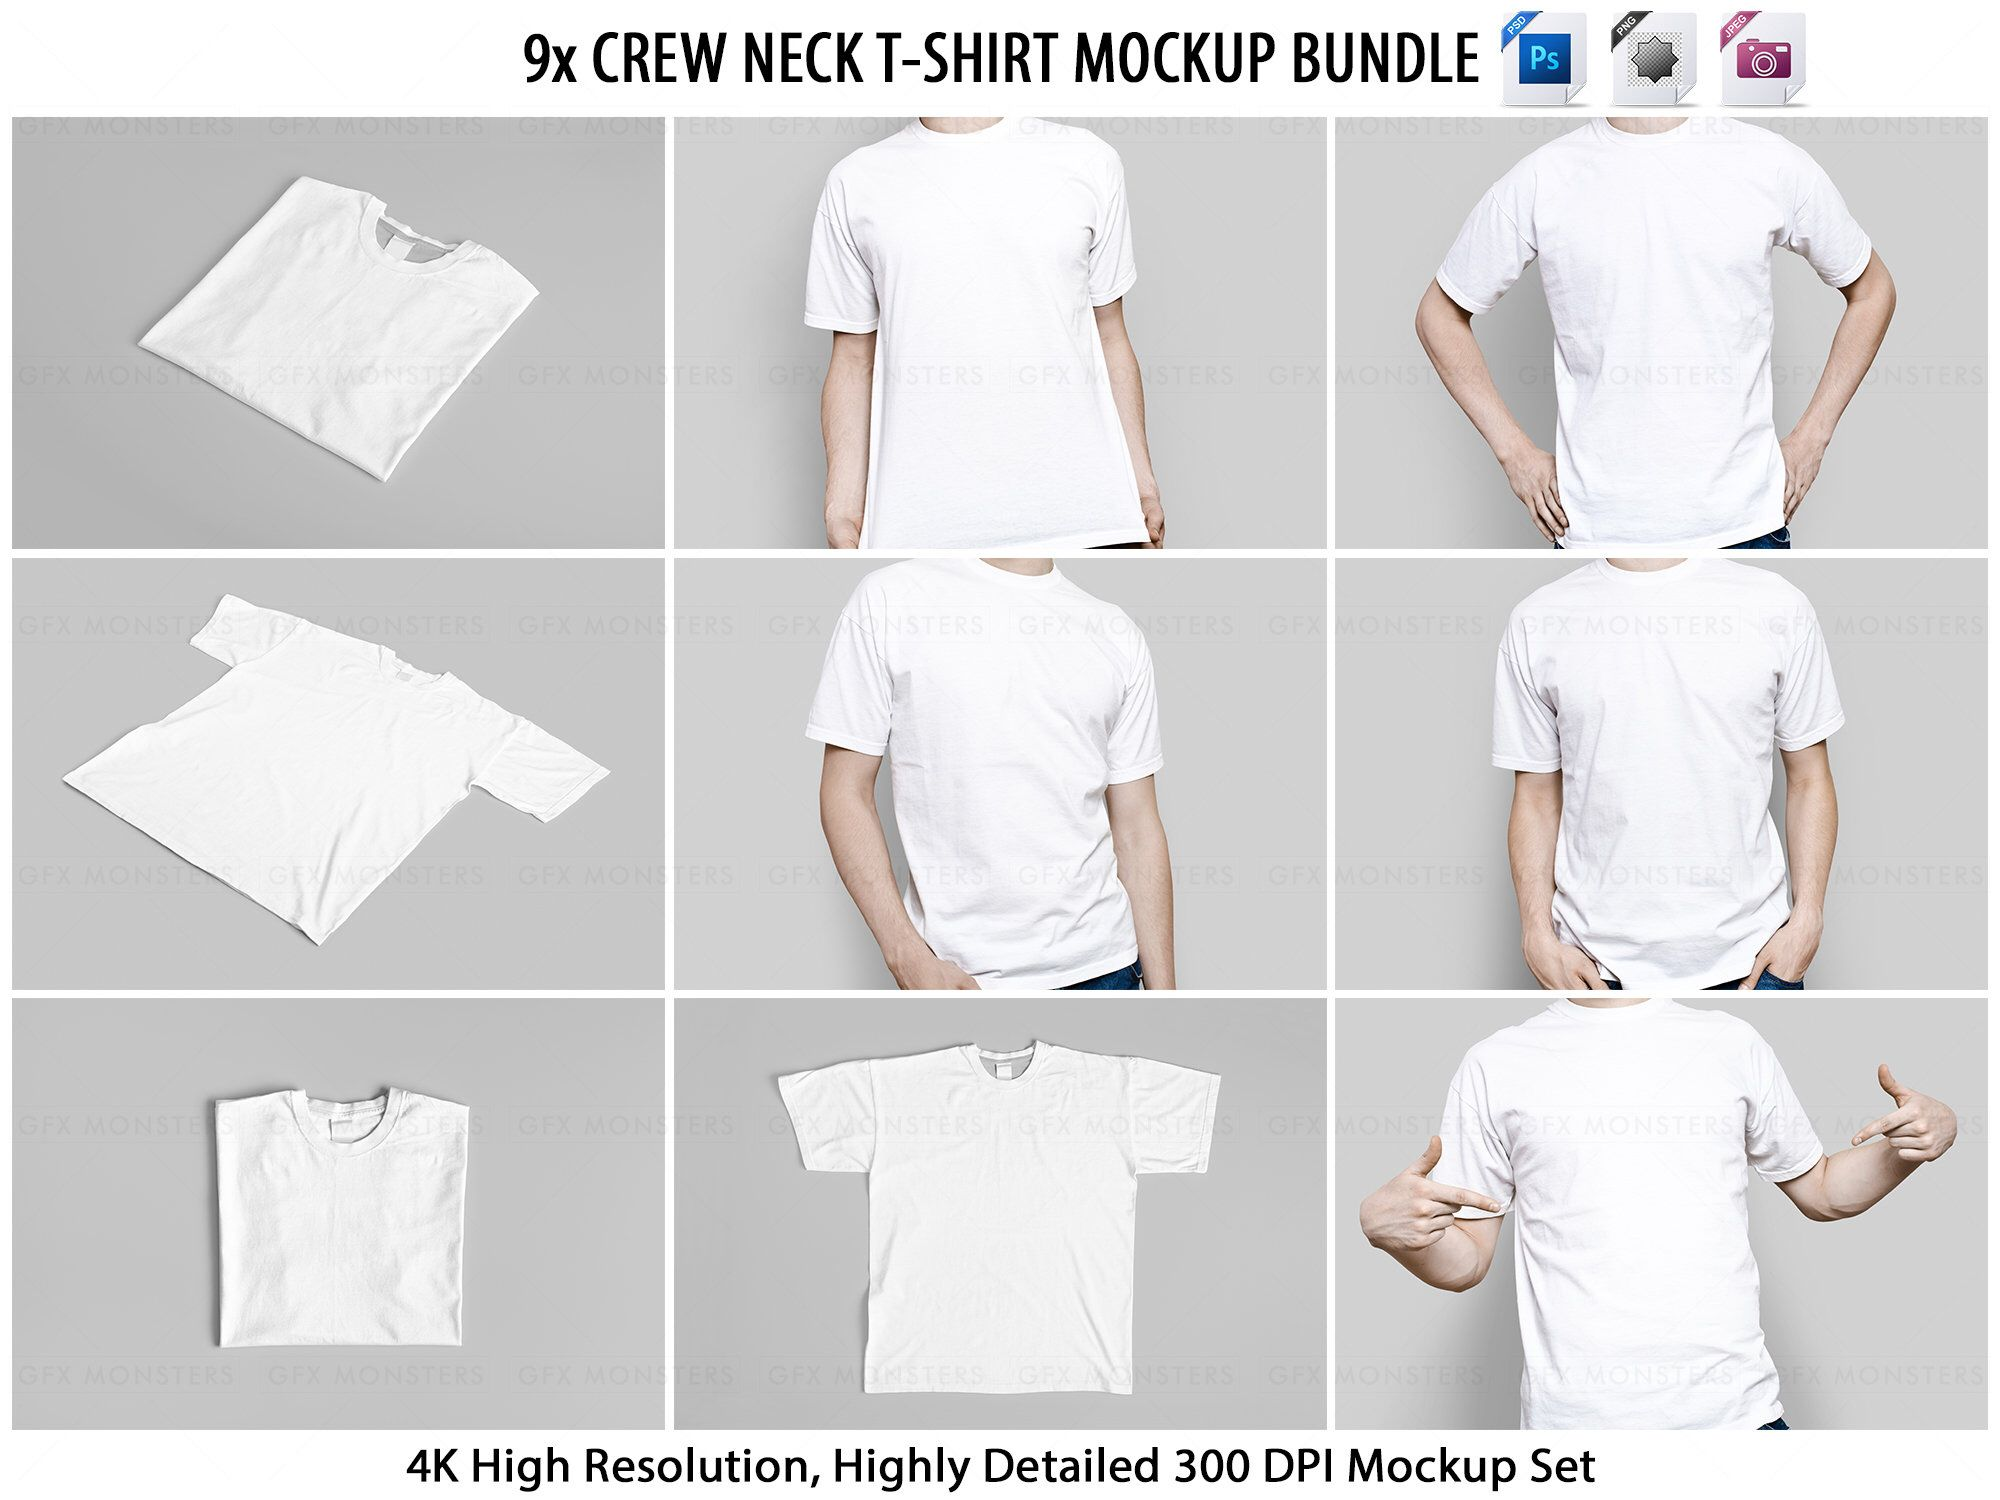 Download T Shirt Mockup Psd Crew Neck 9 Jpeg 9 Png 9 Psd Etsy In 2021 Clothing Mockup Crew Neck Tshirt Tshirt Mockup